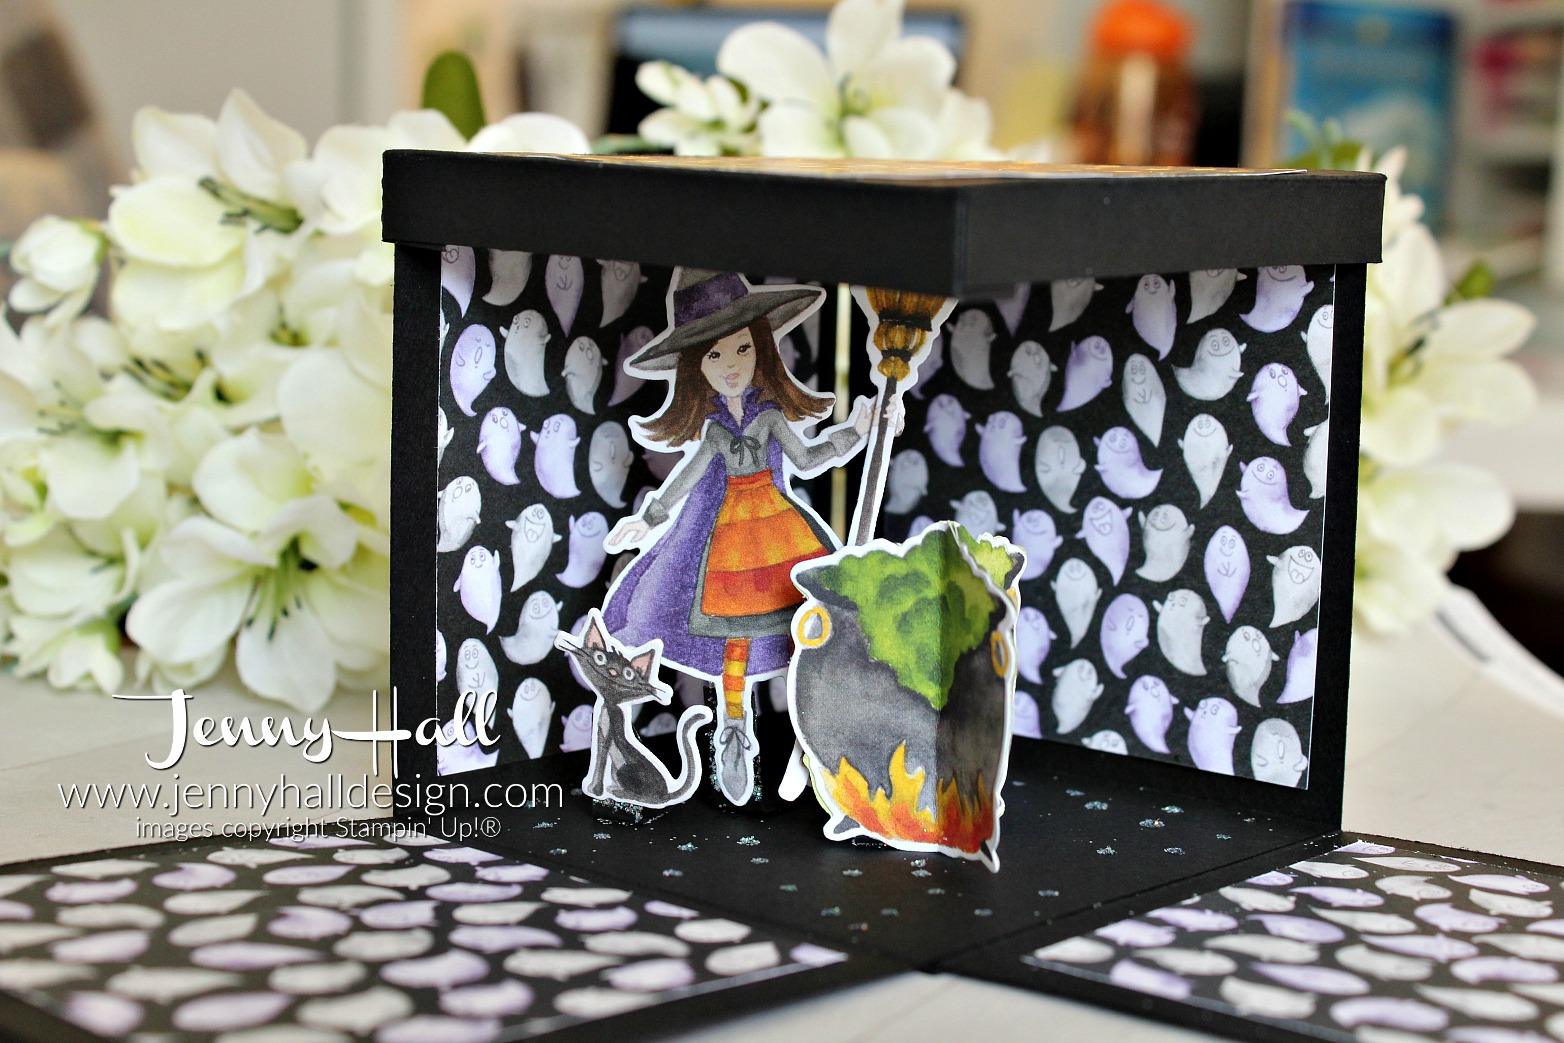 August Be Inspired Blog Hop Halloween explosion box card created by Jenny Hall at www.jennyhalldesign.com for #cardmaking #explosionboxcard #stamping #stampinup #jennyhall #jennyhalldesign #jennystampsup #toilandtroubledsp #cauldronbubblebundle #halloweendiy #halloweencraft #halloweenkeepsake #artsandcrafts #teachergift #kidfriendly